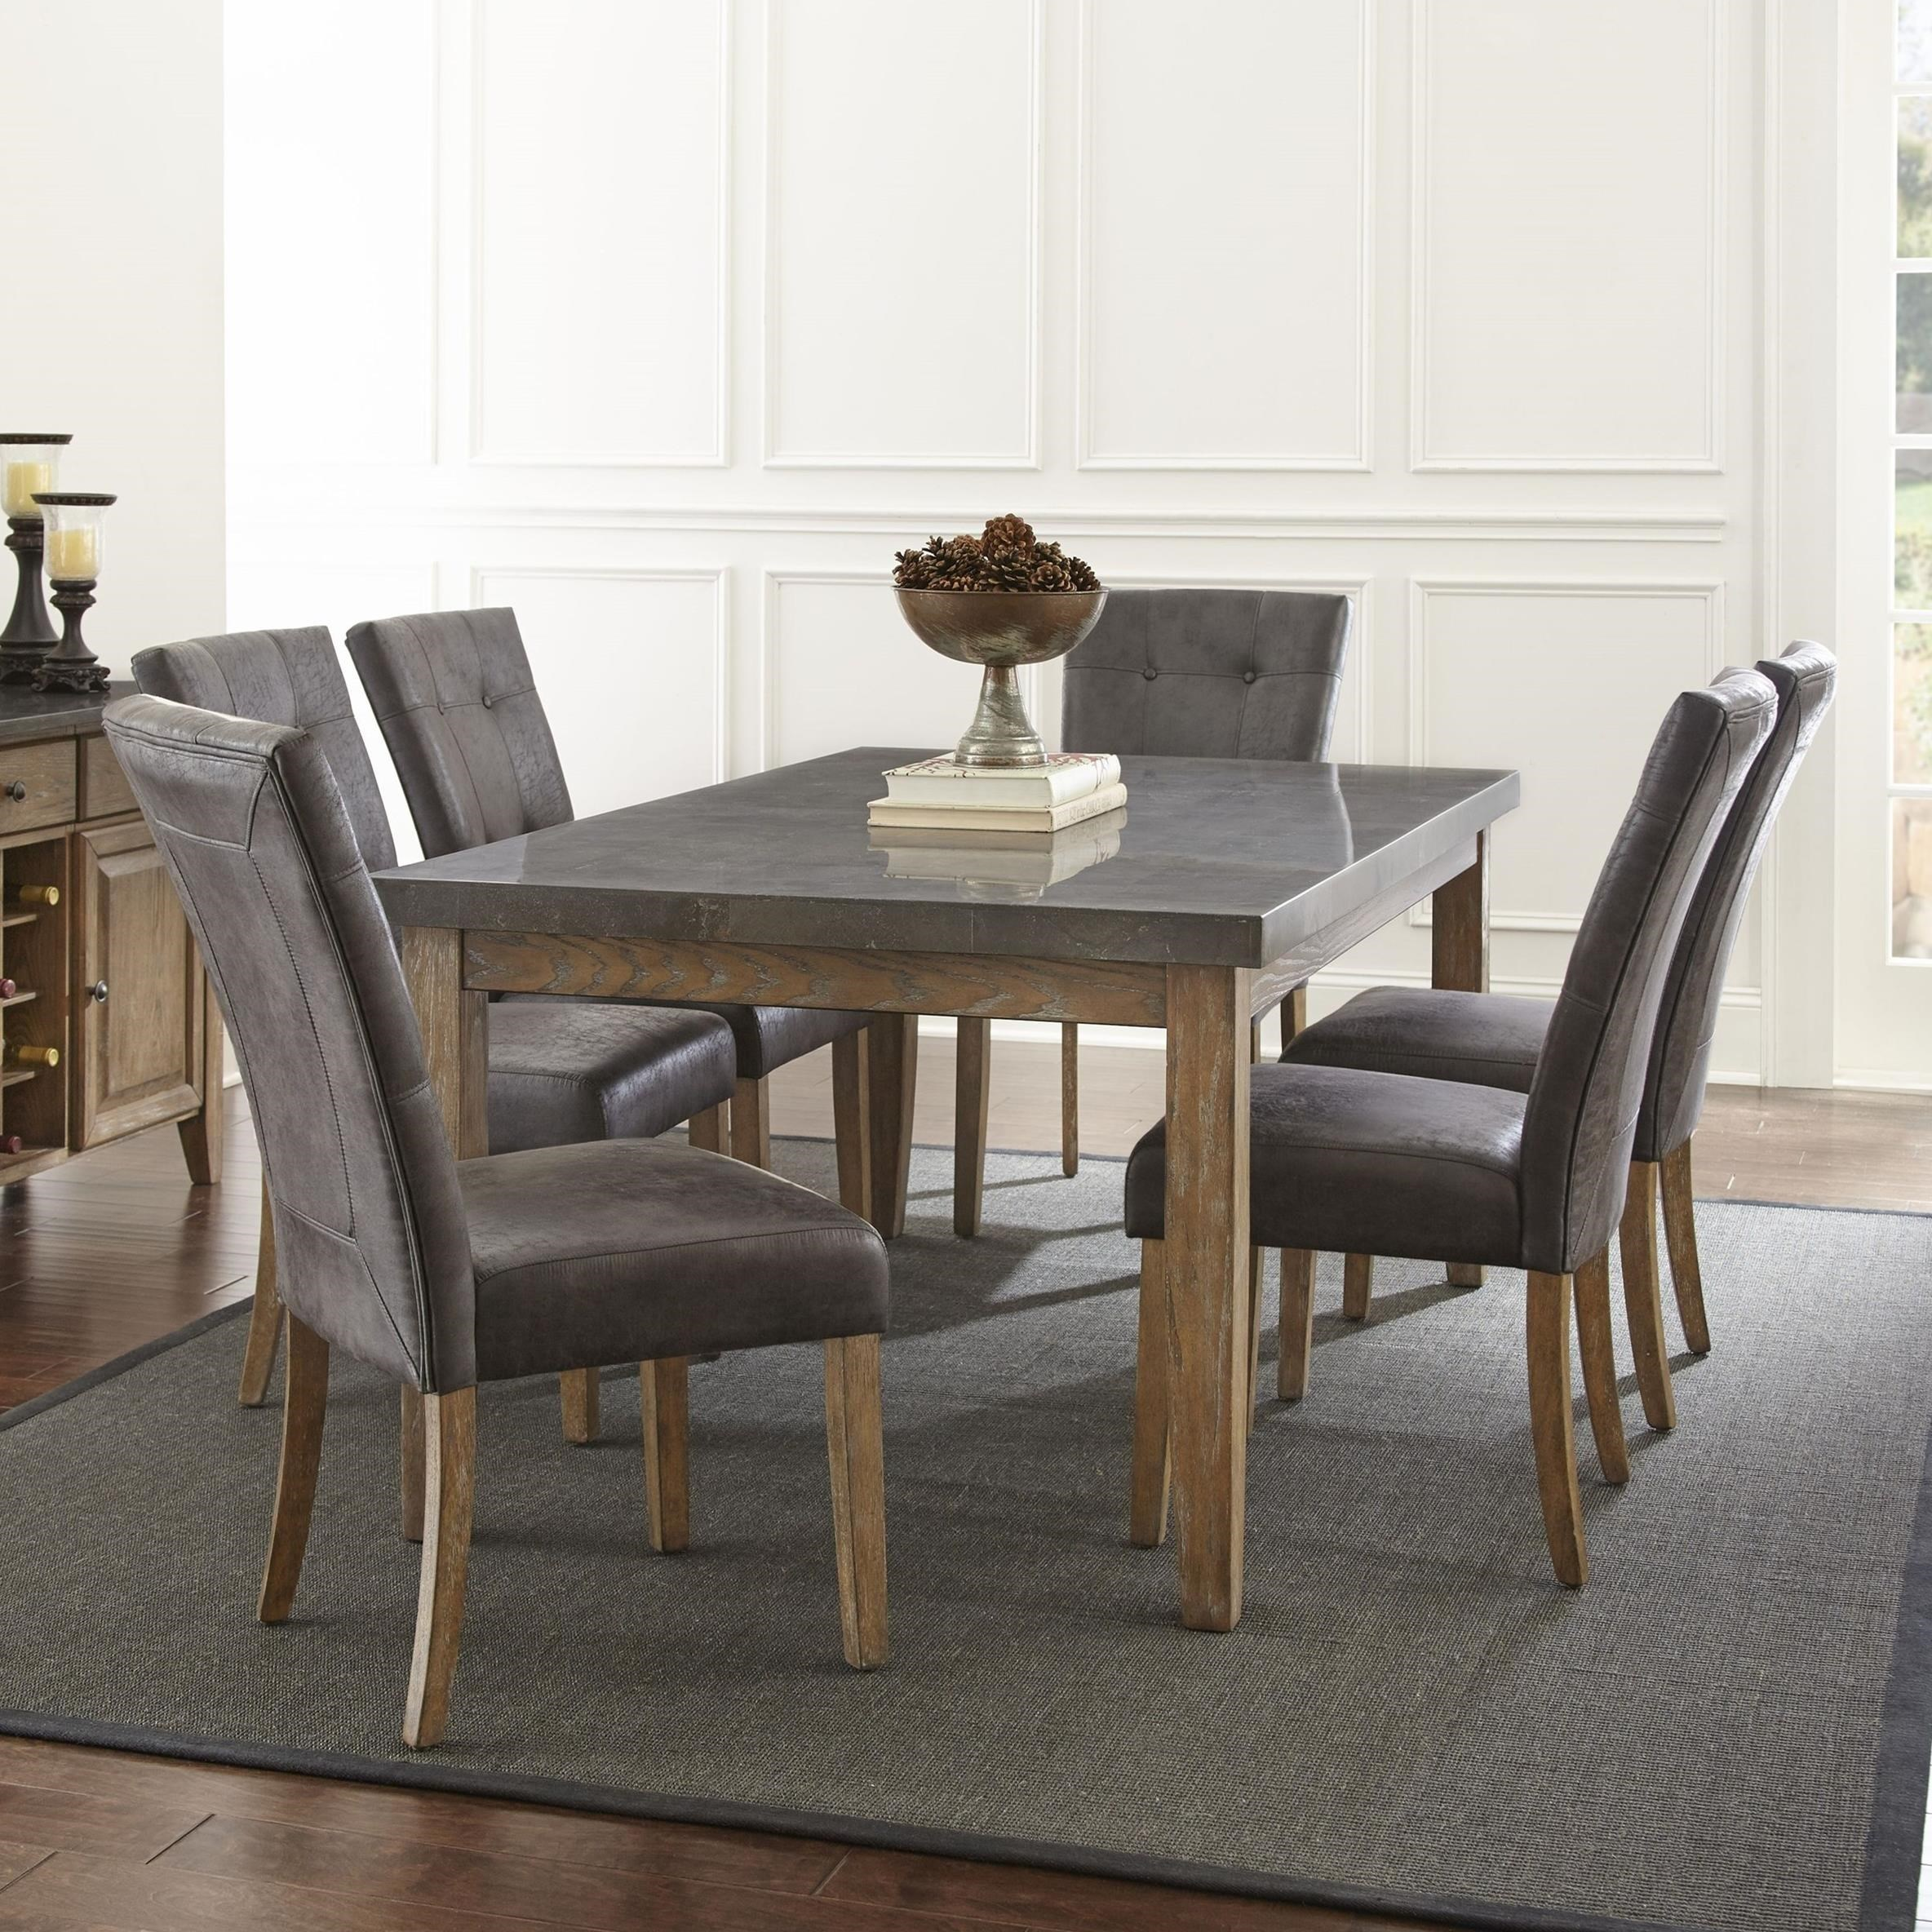 steve silver dining chairs office chair no wheels debby 7 piece transitional table and set with debby7